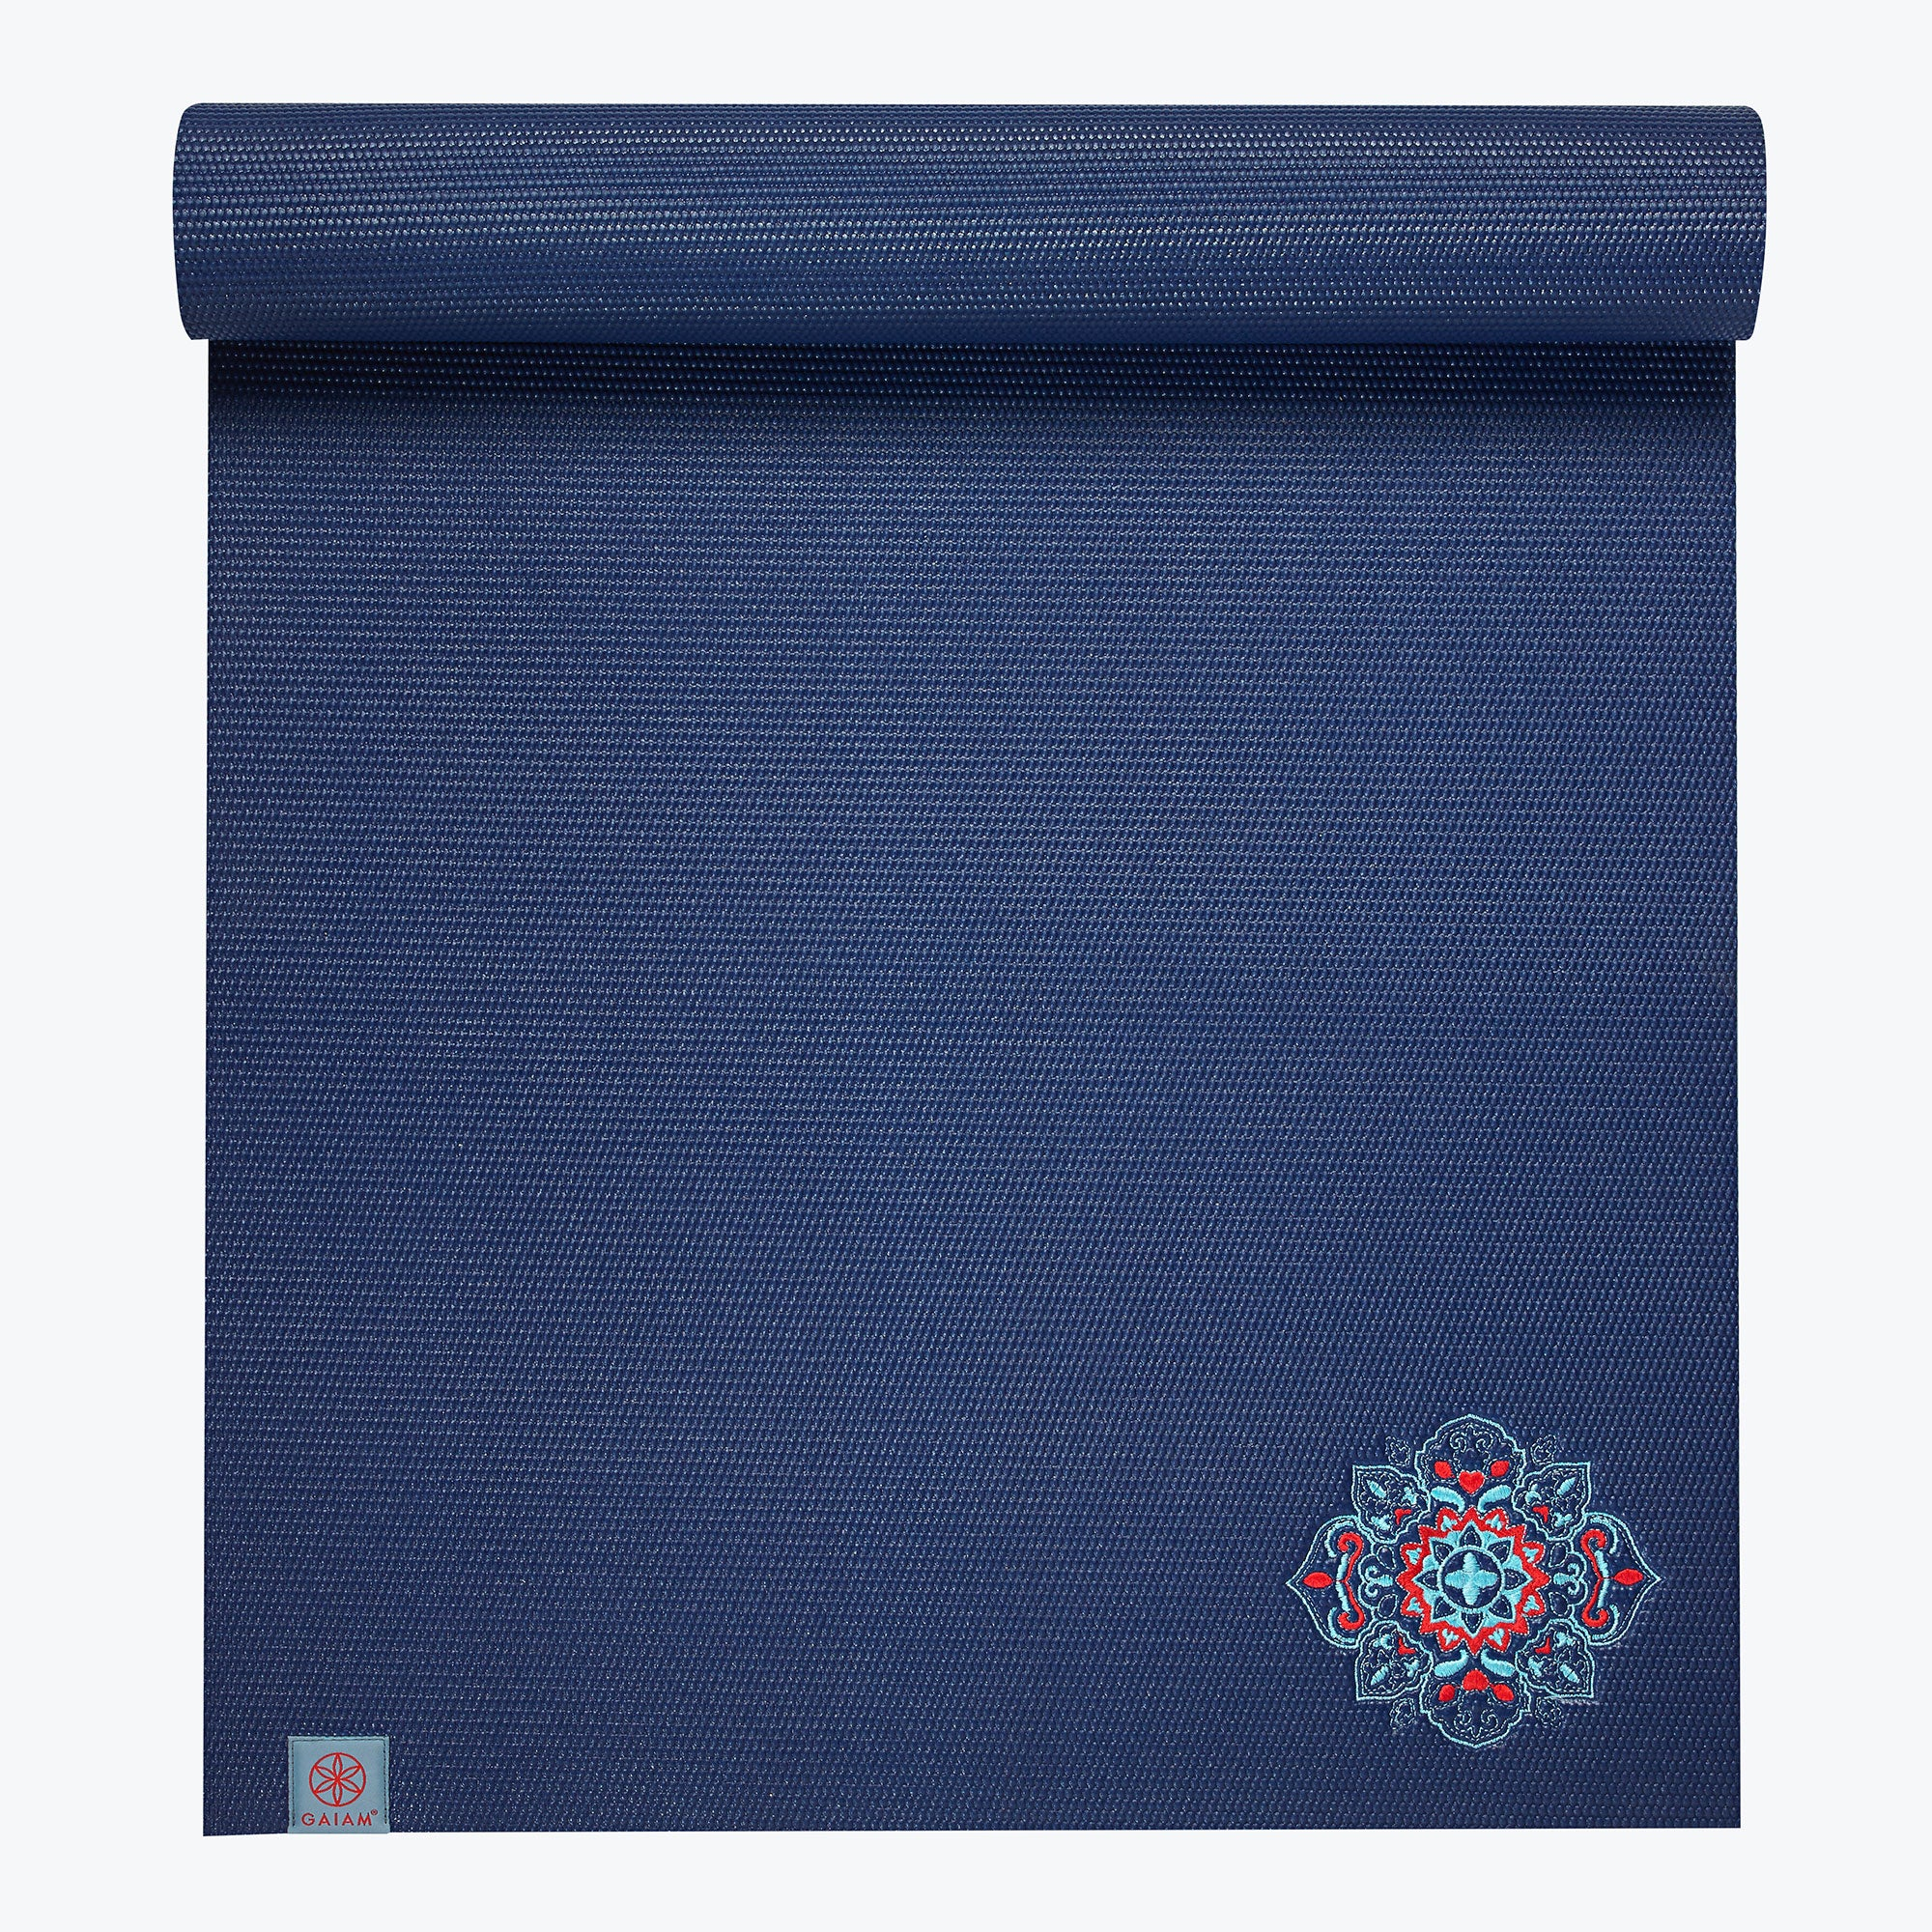 Gaiam Embroidered Floral Denim Yoga Mat (6mm)